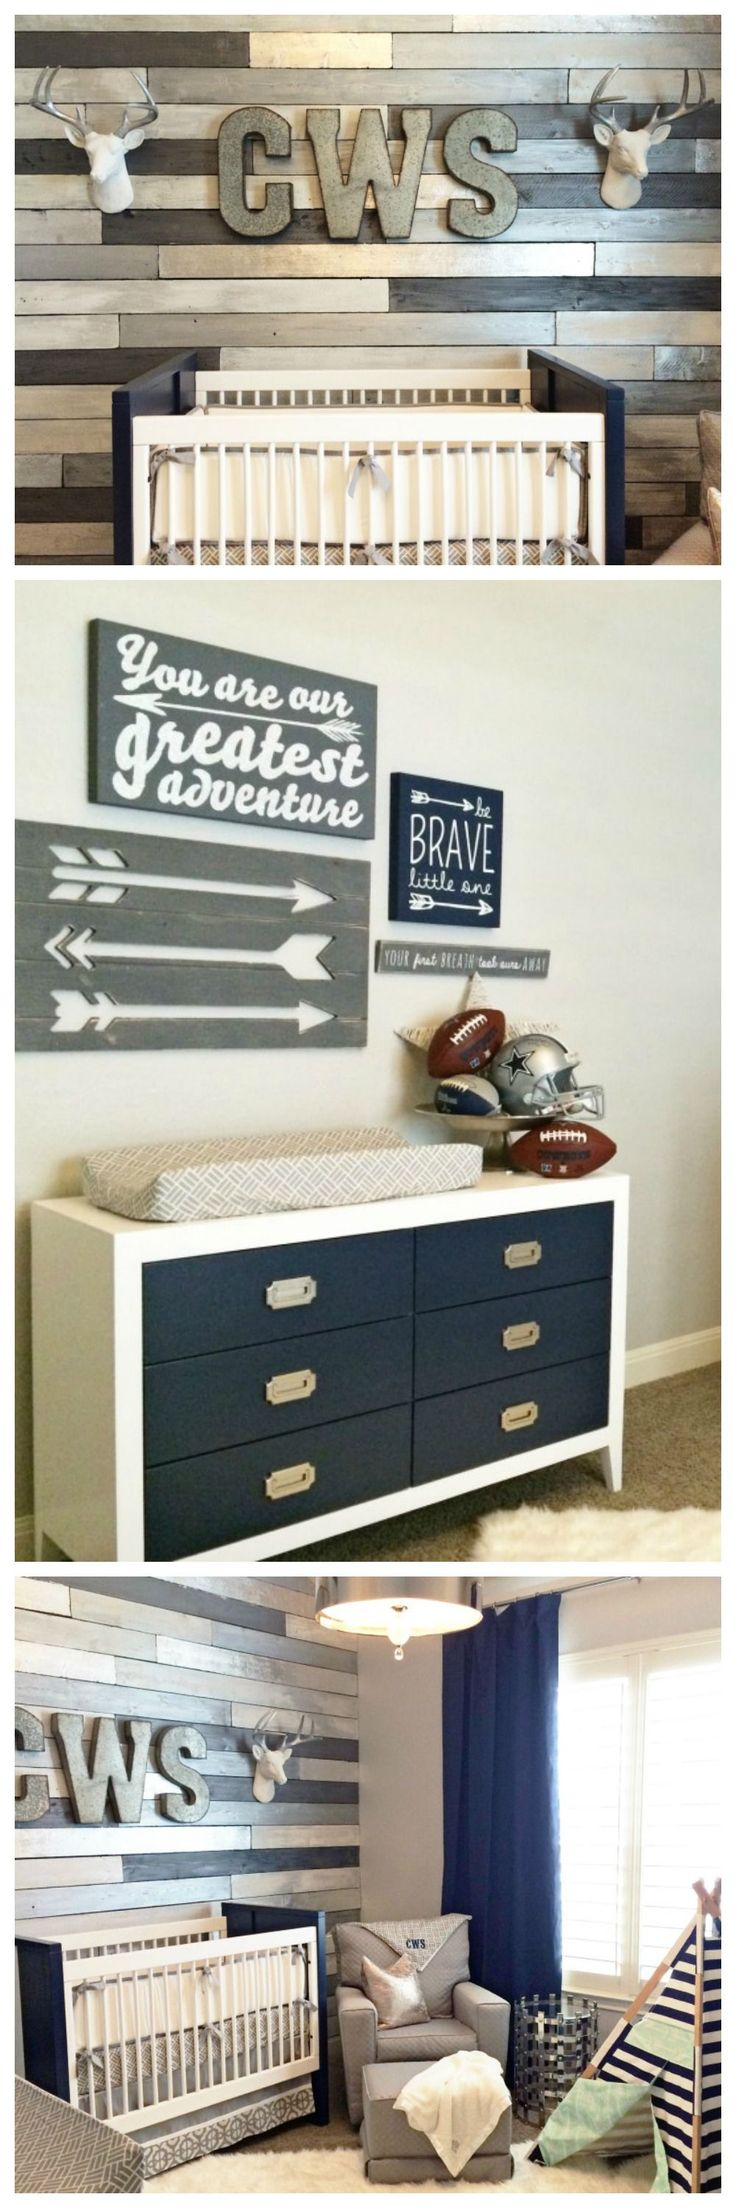 Metallic Wood Wall Nursery - love the rustic, yet modern decor in this baby boy room! #babyboynursery